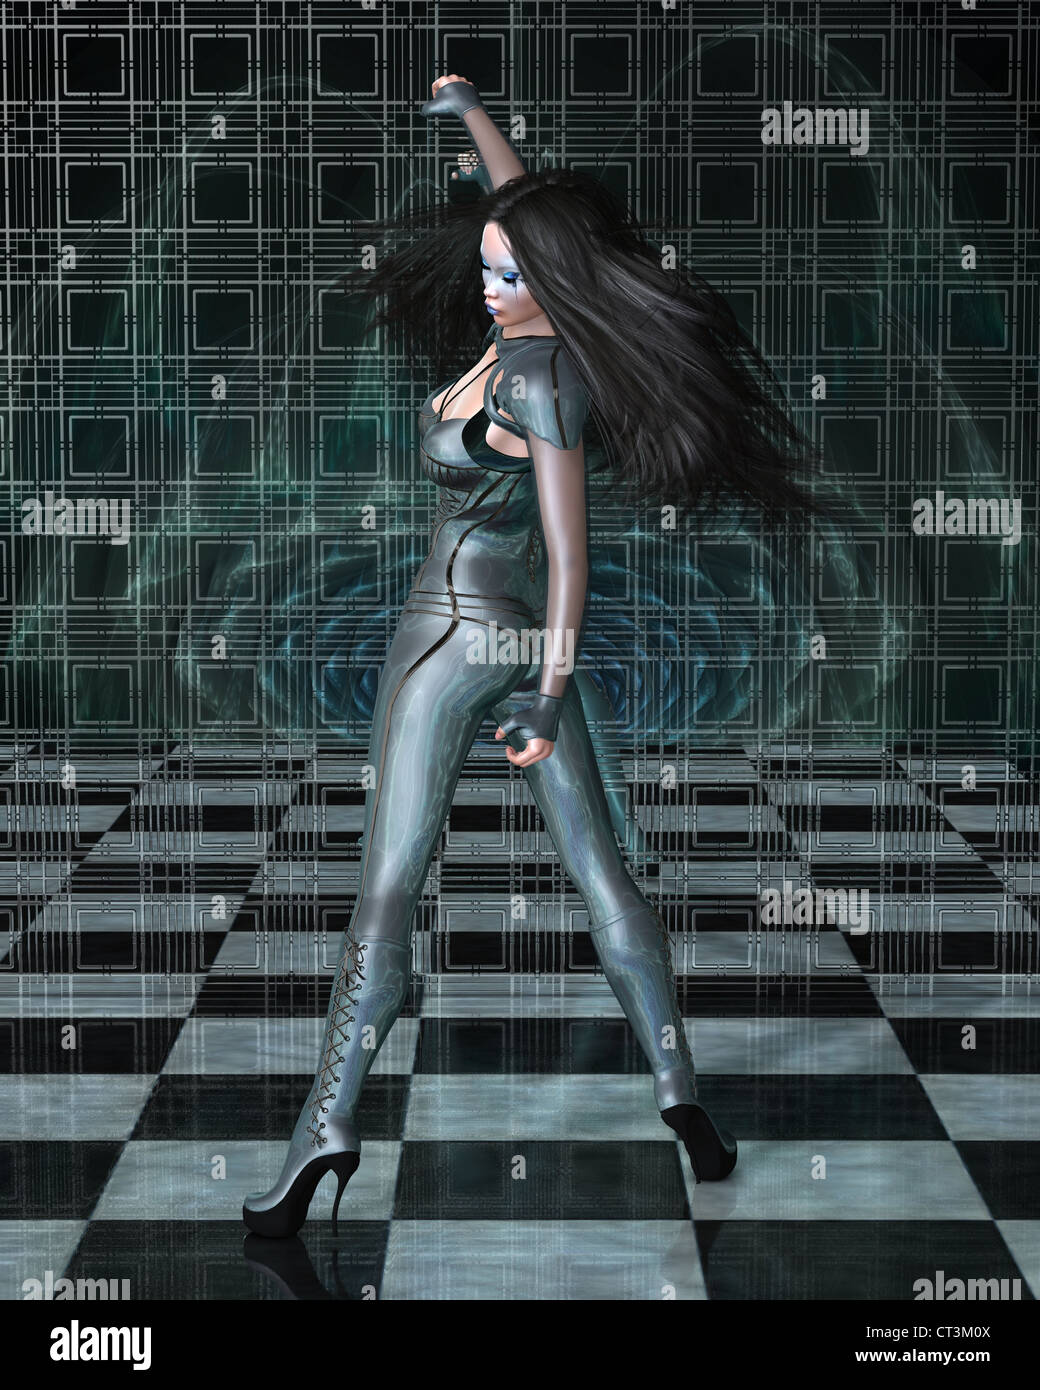 Catsuit Woman Reflections - Stock Image